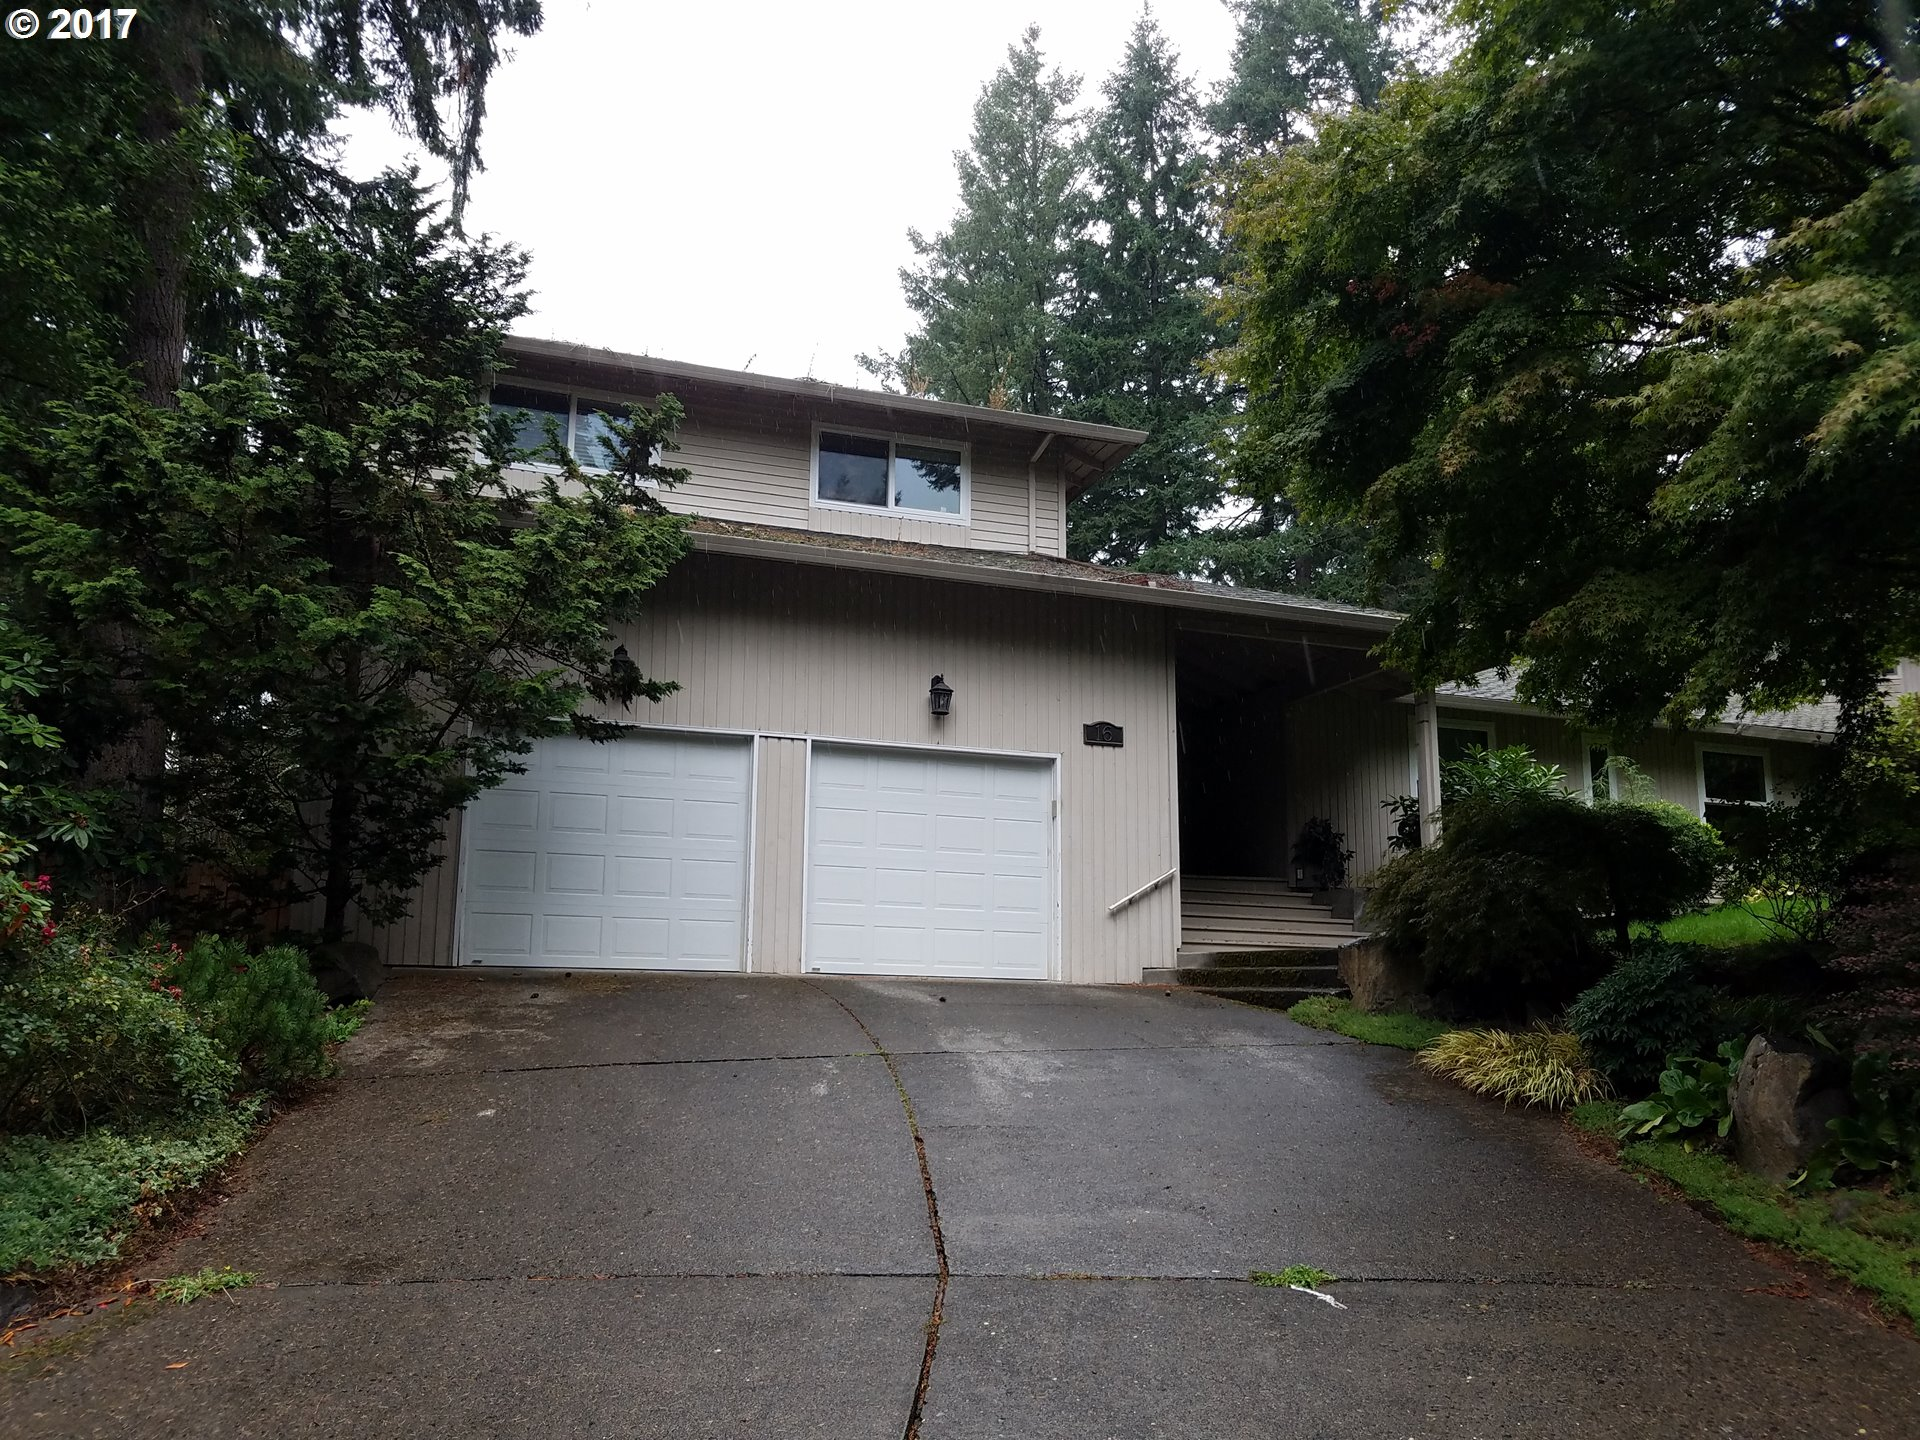 16 BERNINI CT, Lake Oswego, OR 97035